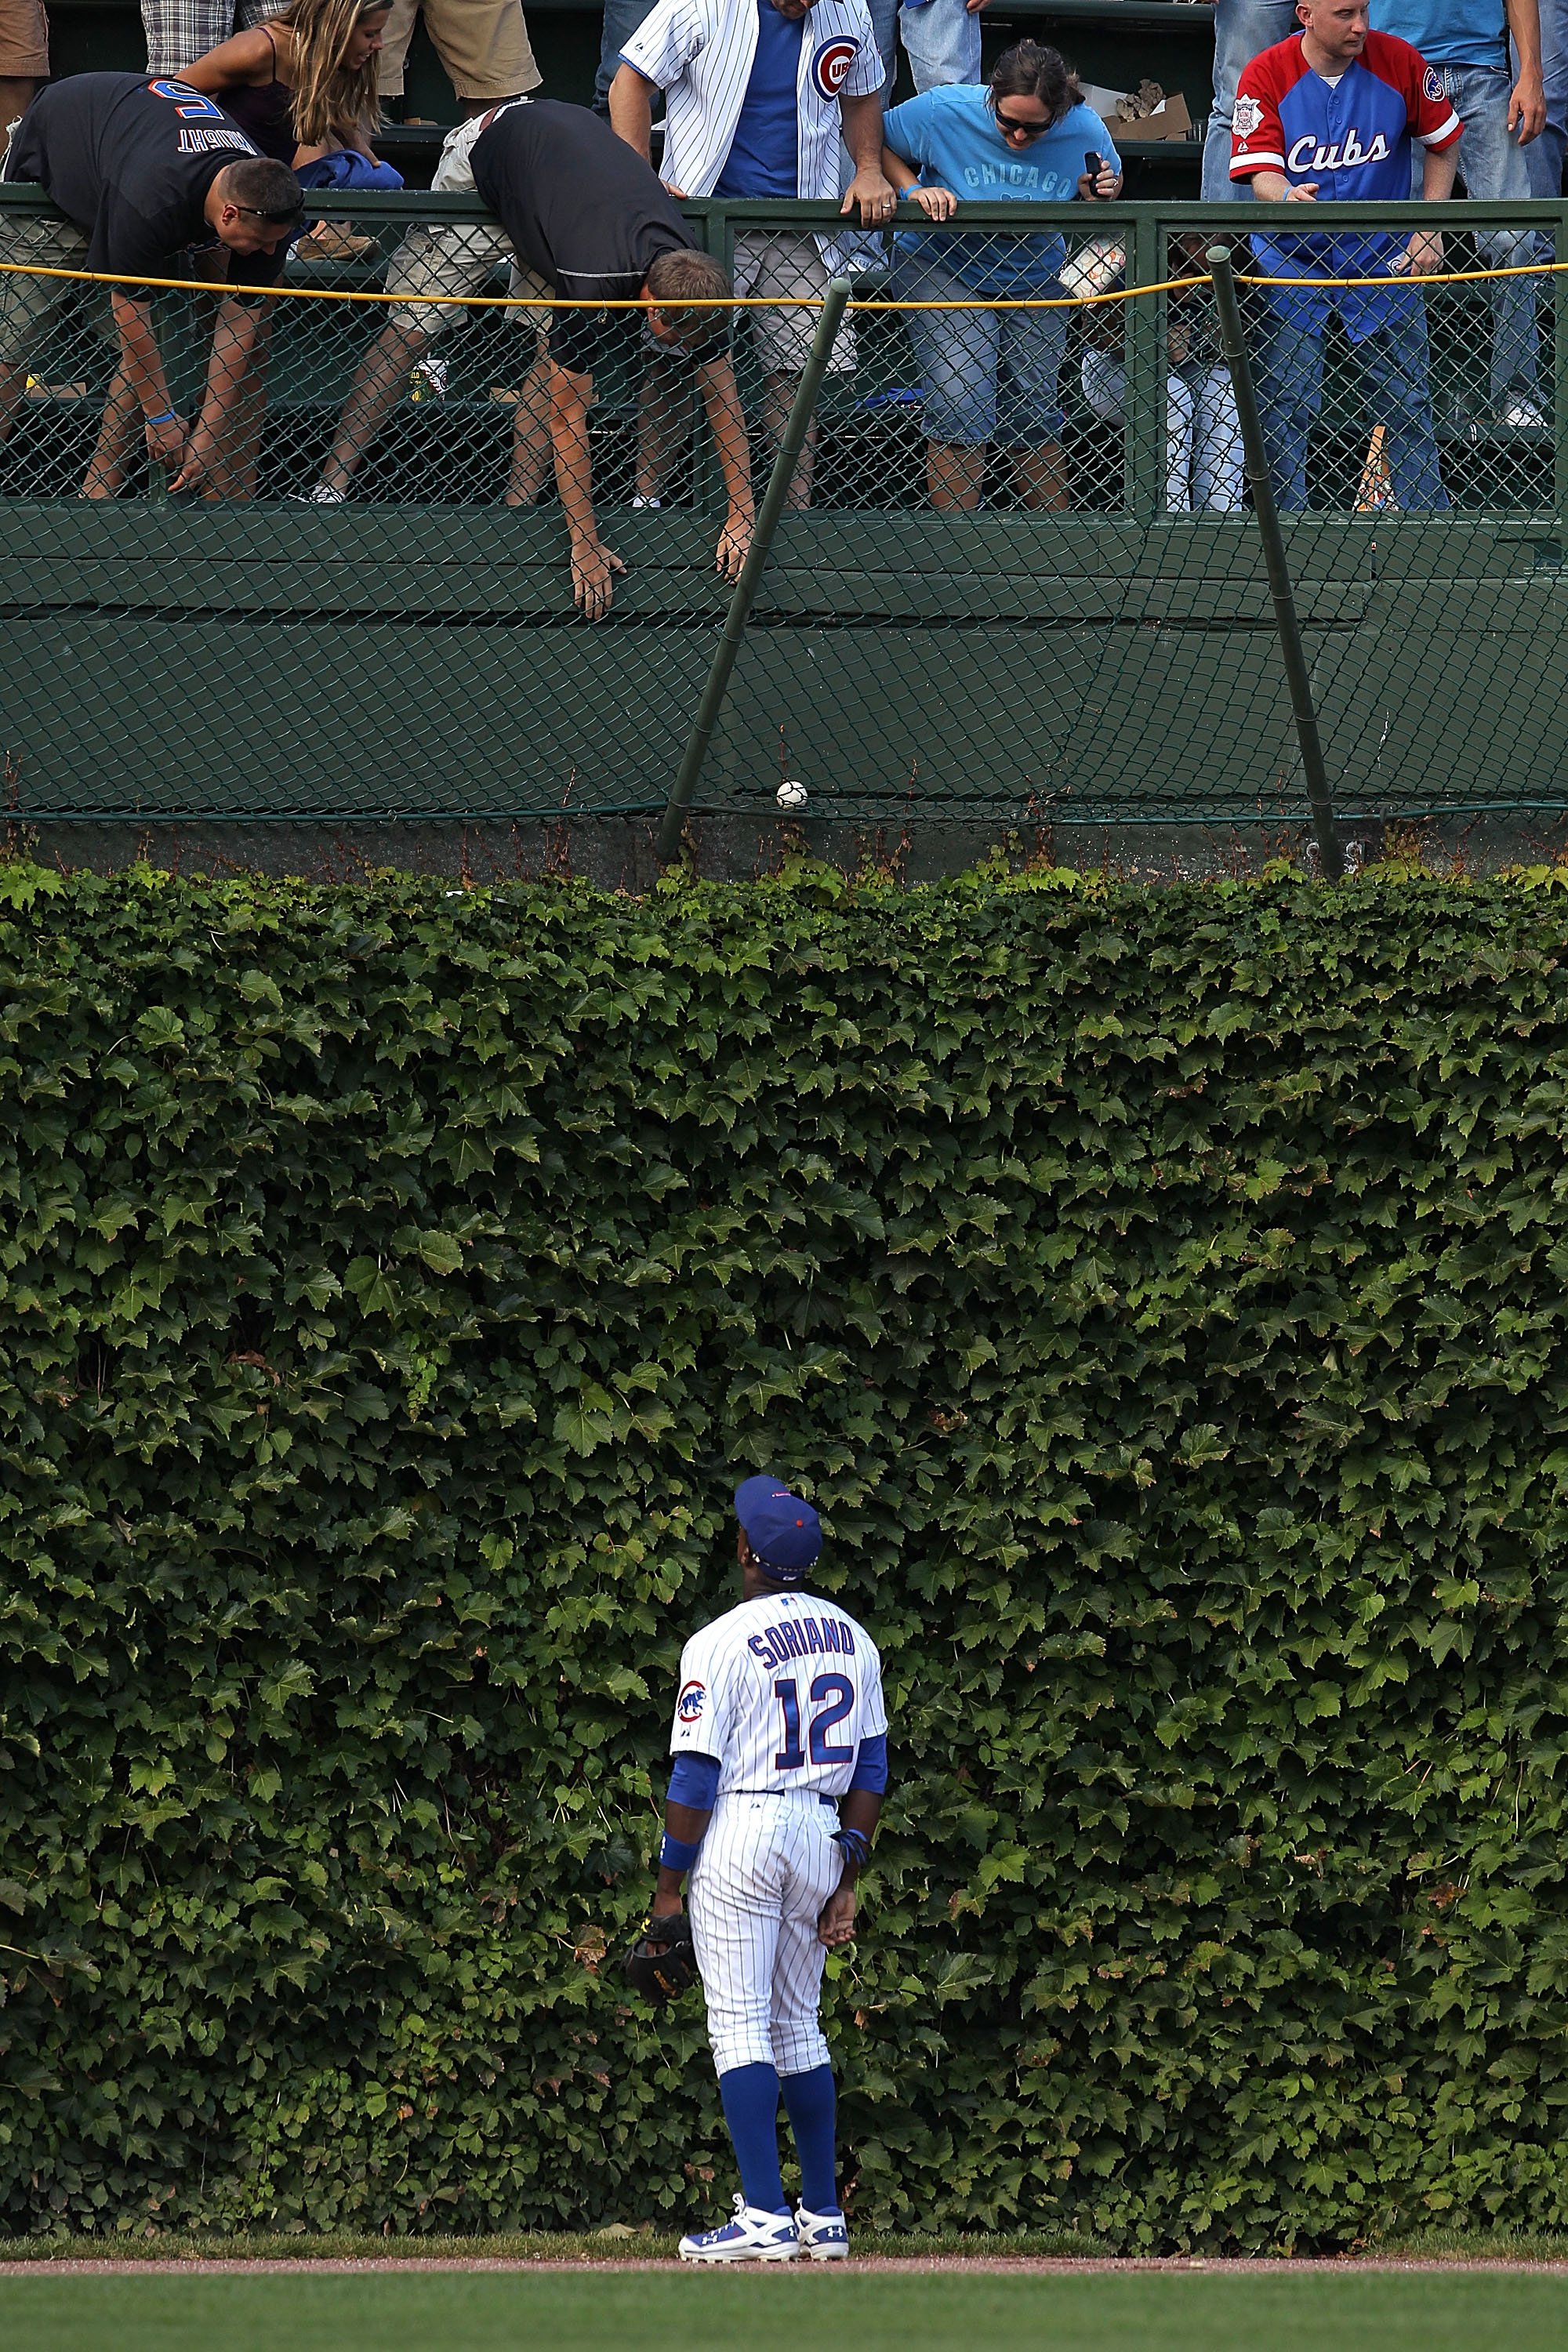 CHICAGO - SEPTEMBER 05: Alfonso Soriano #12 of the Chicago Cubs watches as fans try to grab a home run ball hit by Ike Davis of the New York Mets out of the basket in left field at Wrigley Field on September 5, 2010 in Chicago, Illinois. (Photo by Jonatha